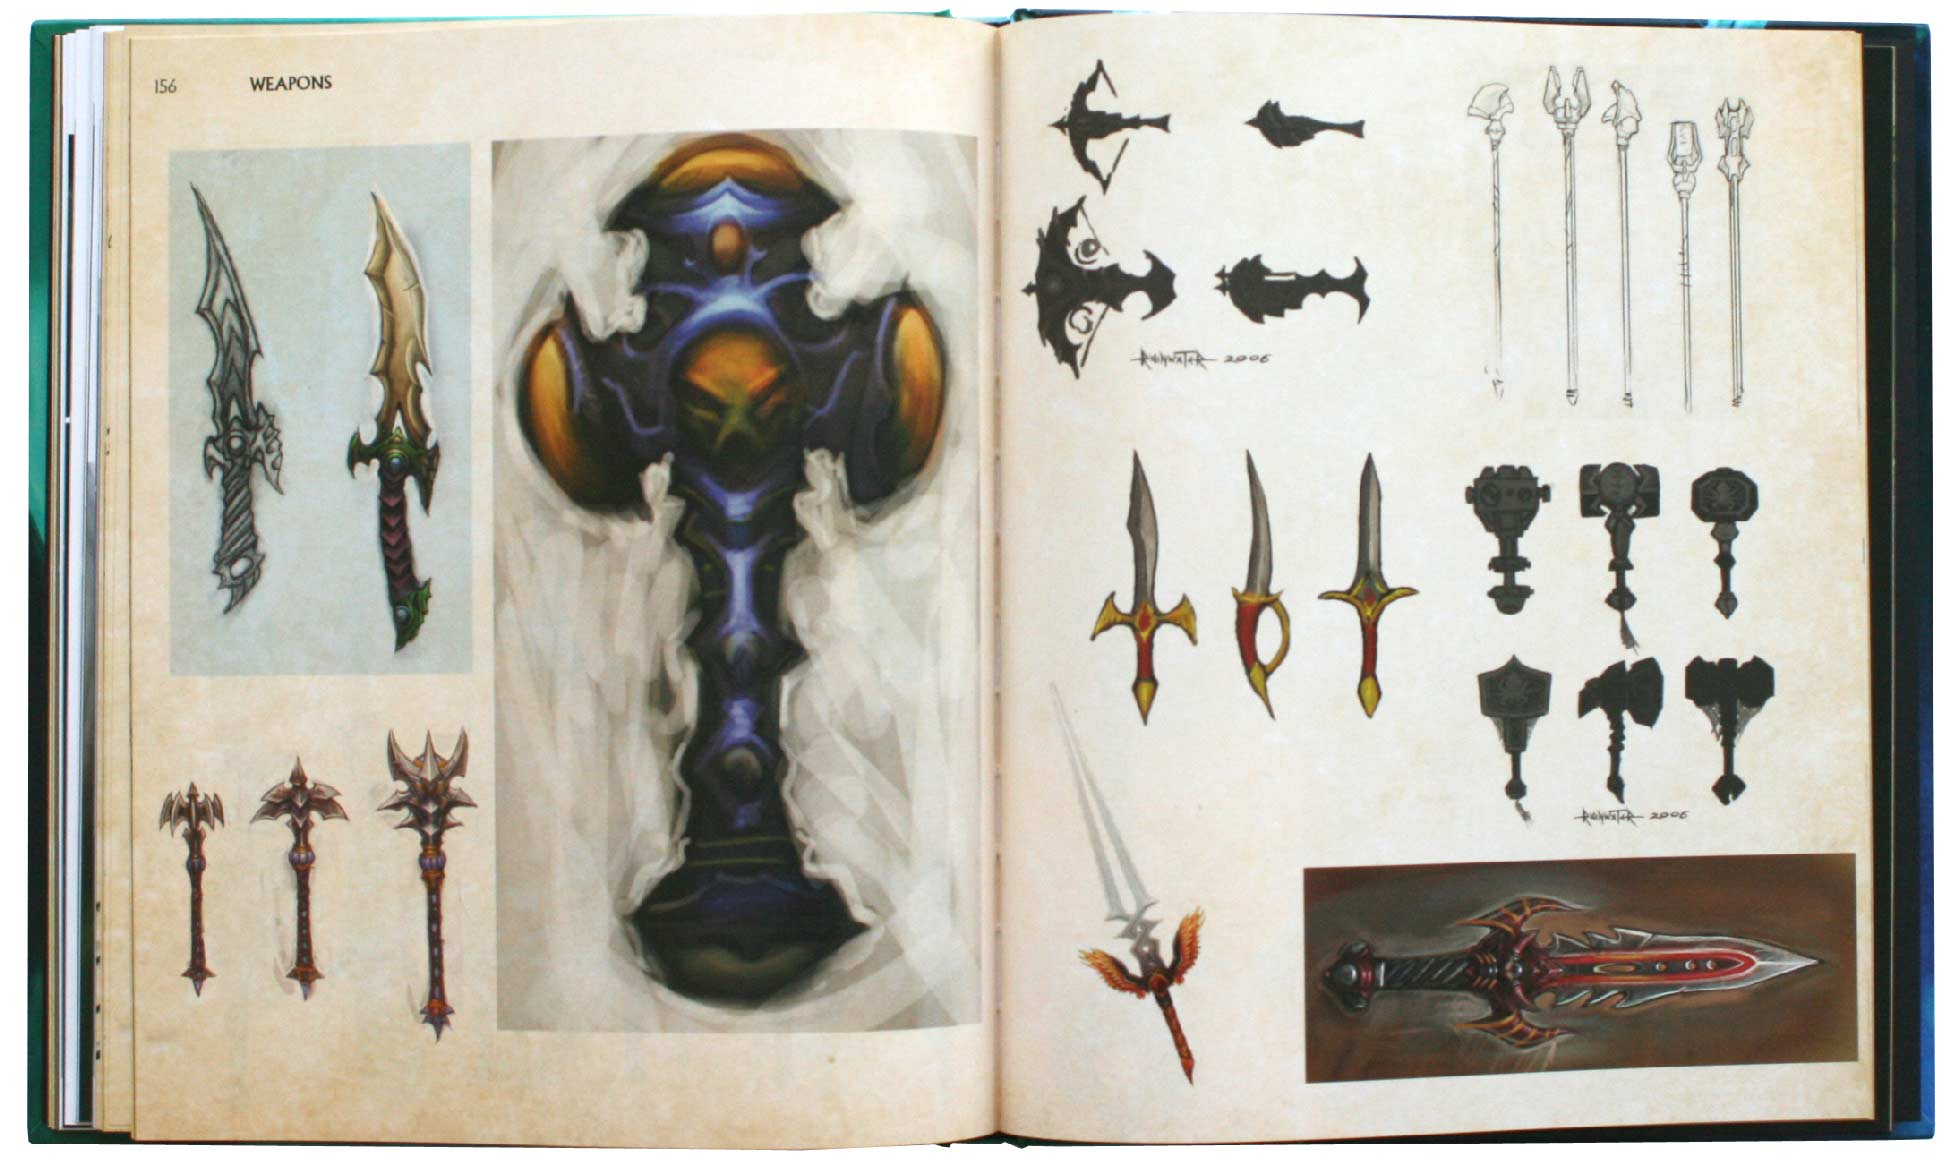 Page 156 et 157 de l'Art book : The Art of the Burning Crusade (World of Warcraft)